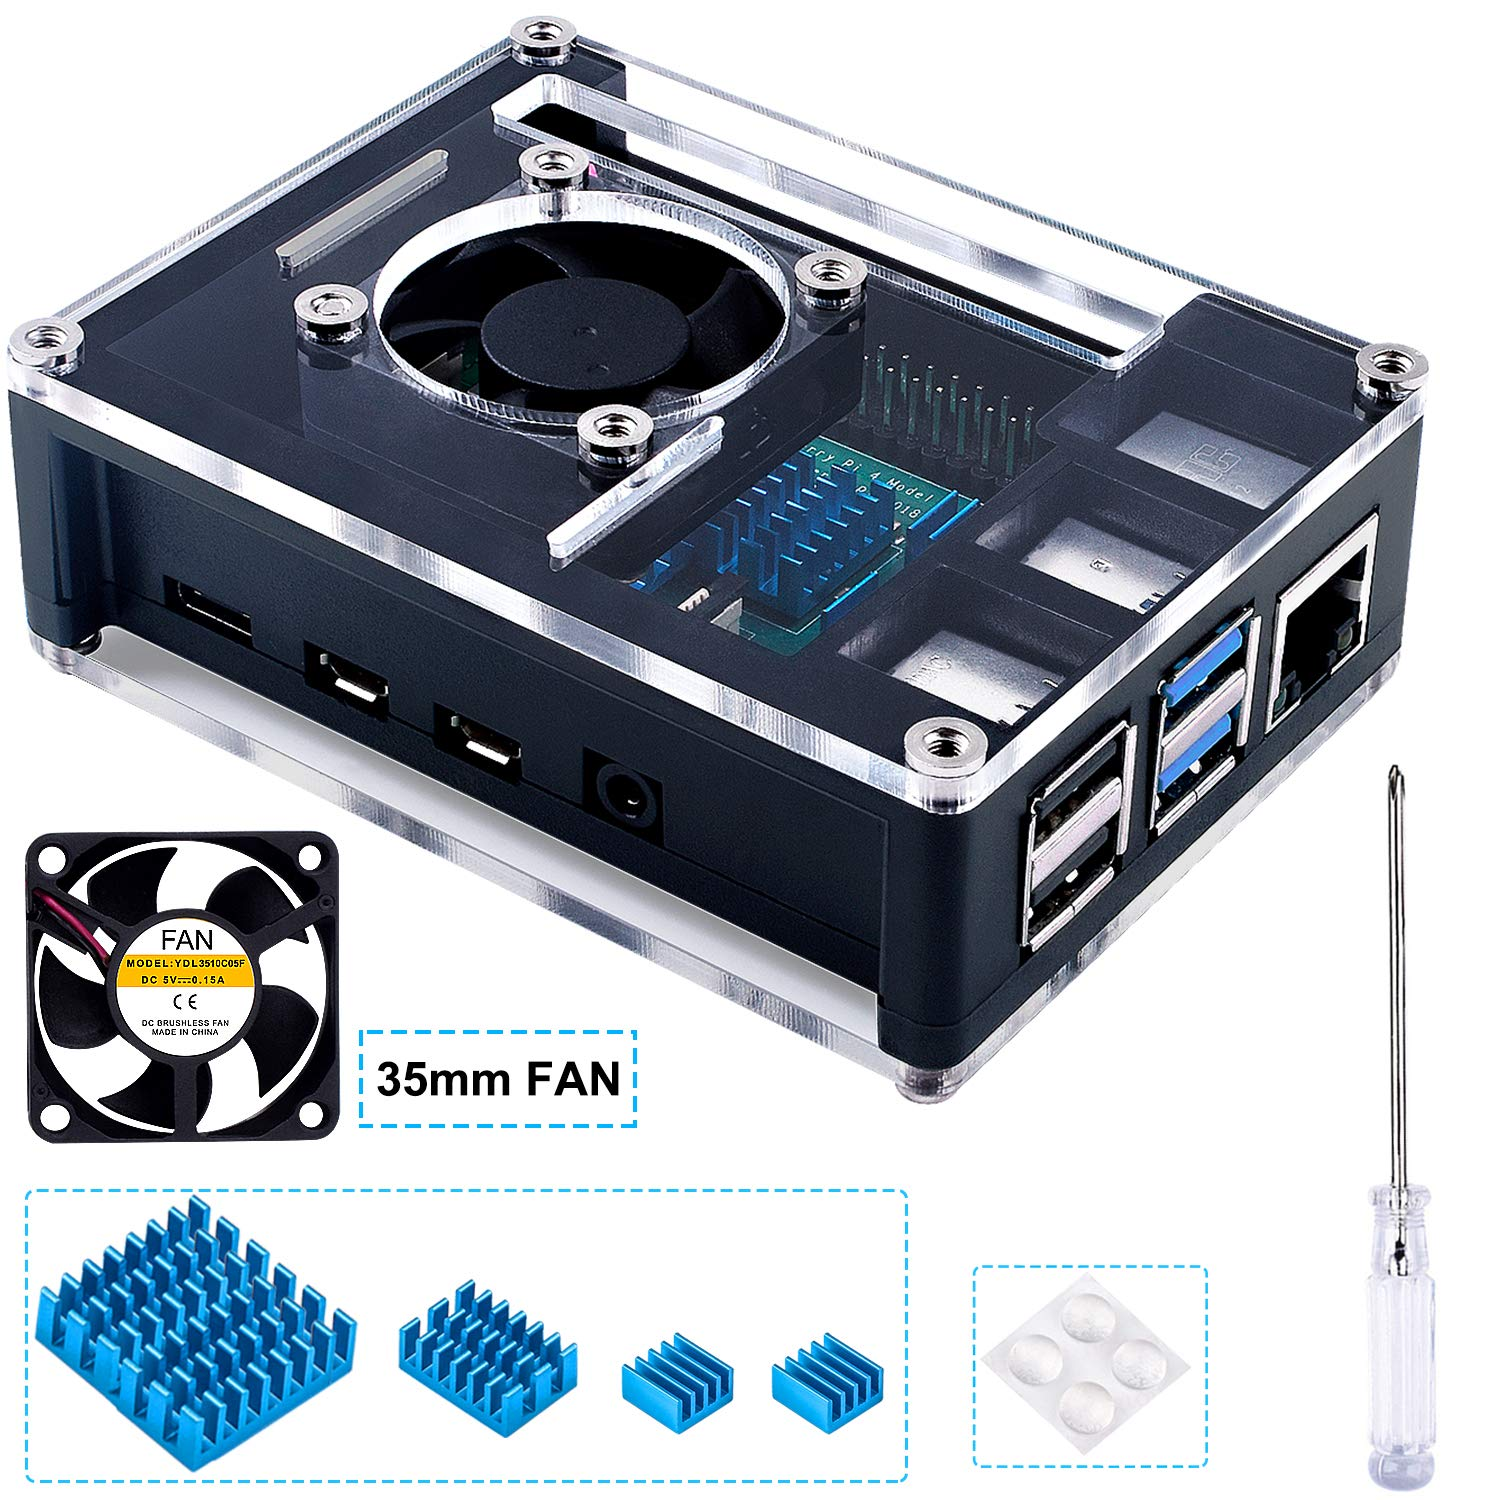 Miuzei Case for Raspberry Pi 4 with 5V DC Cooling Fan, 4 Pcs Heat Sinks for Raspberry Pi 4 Model B